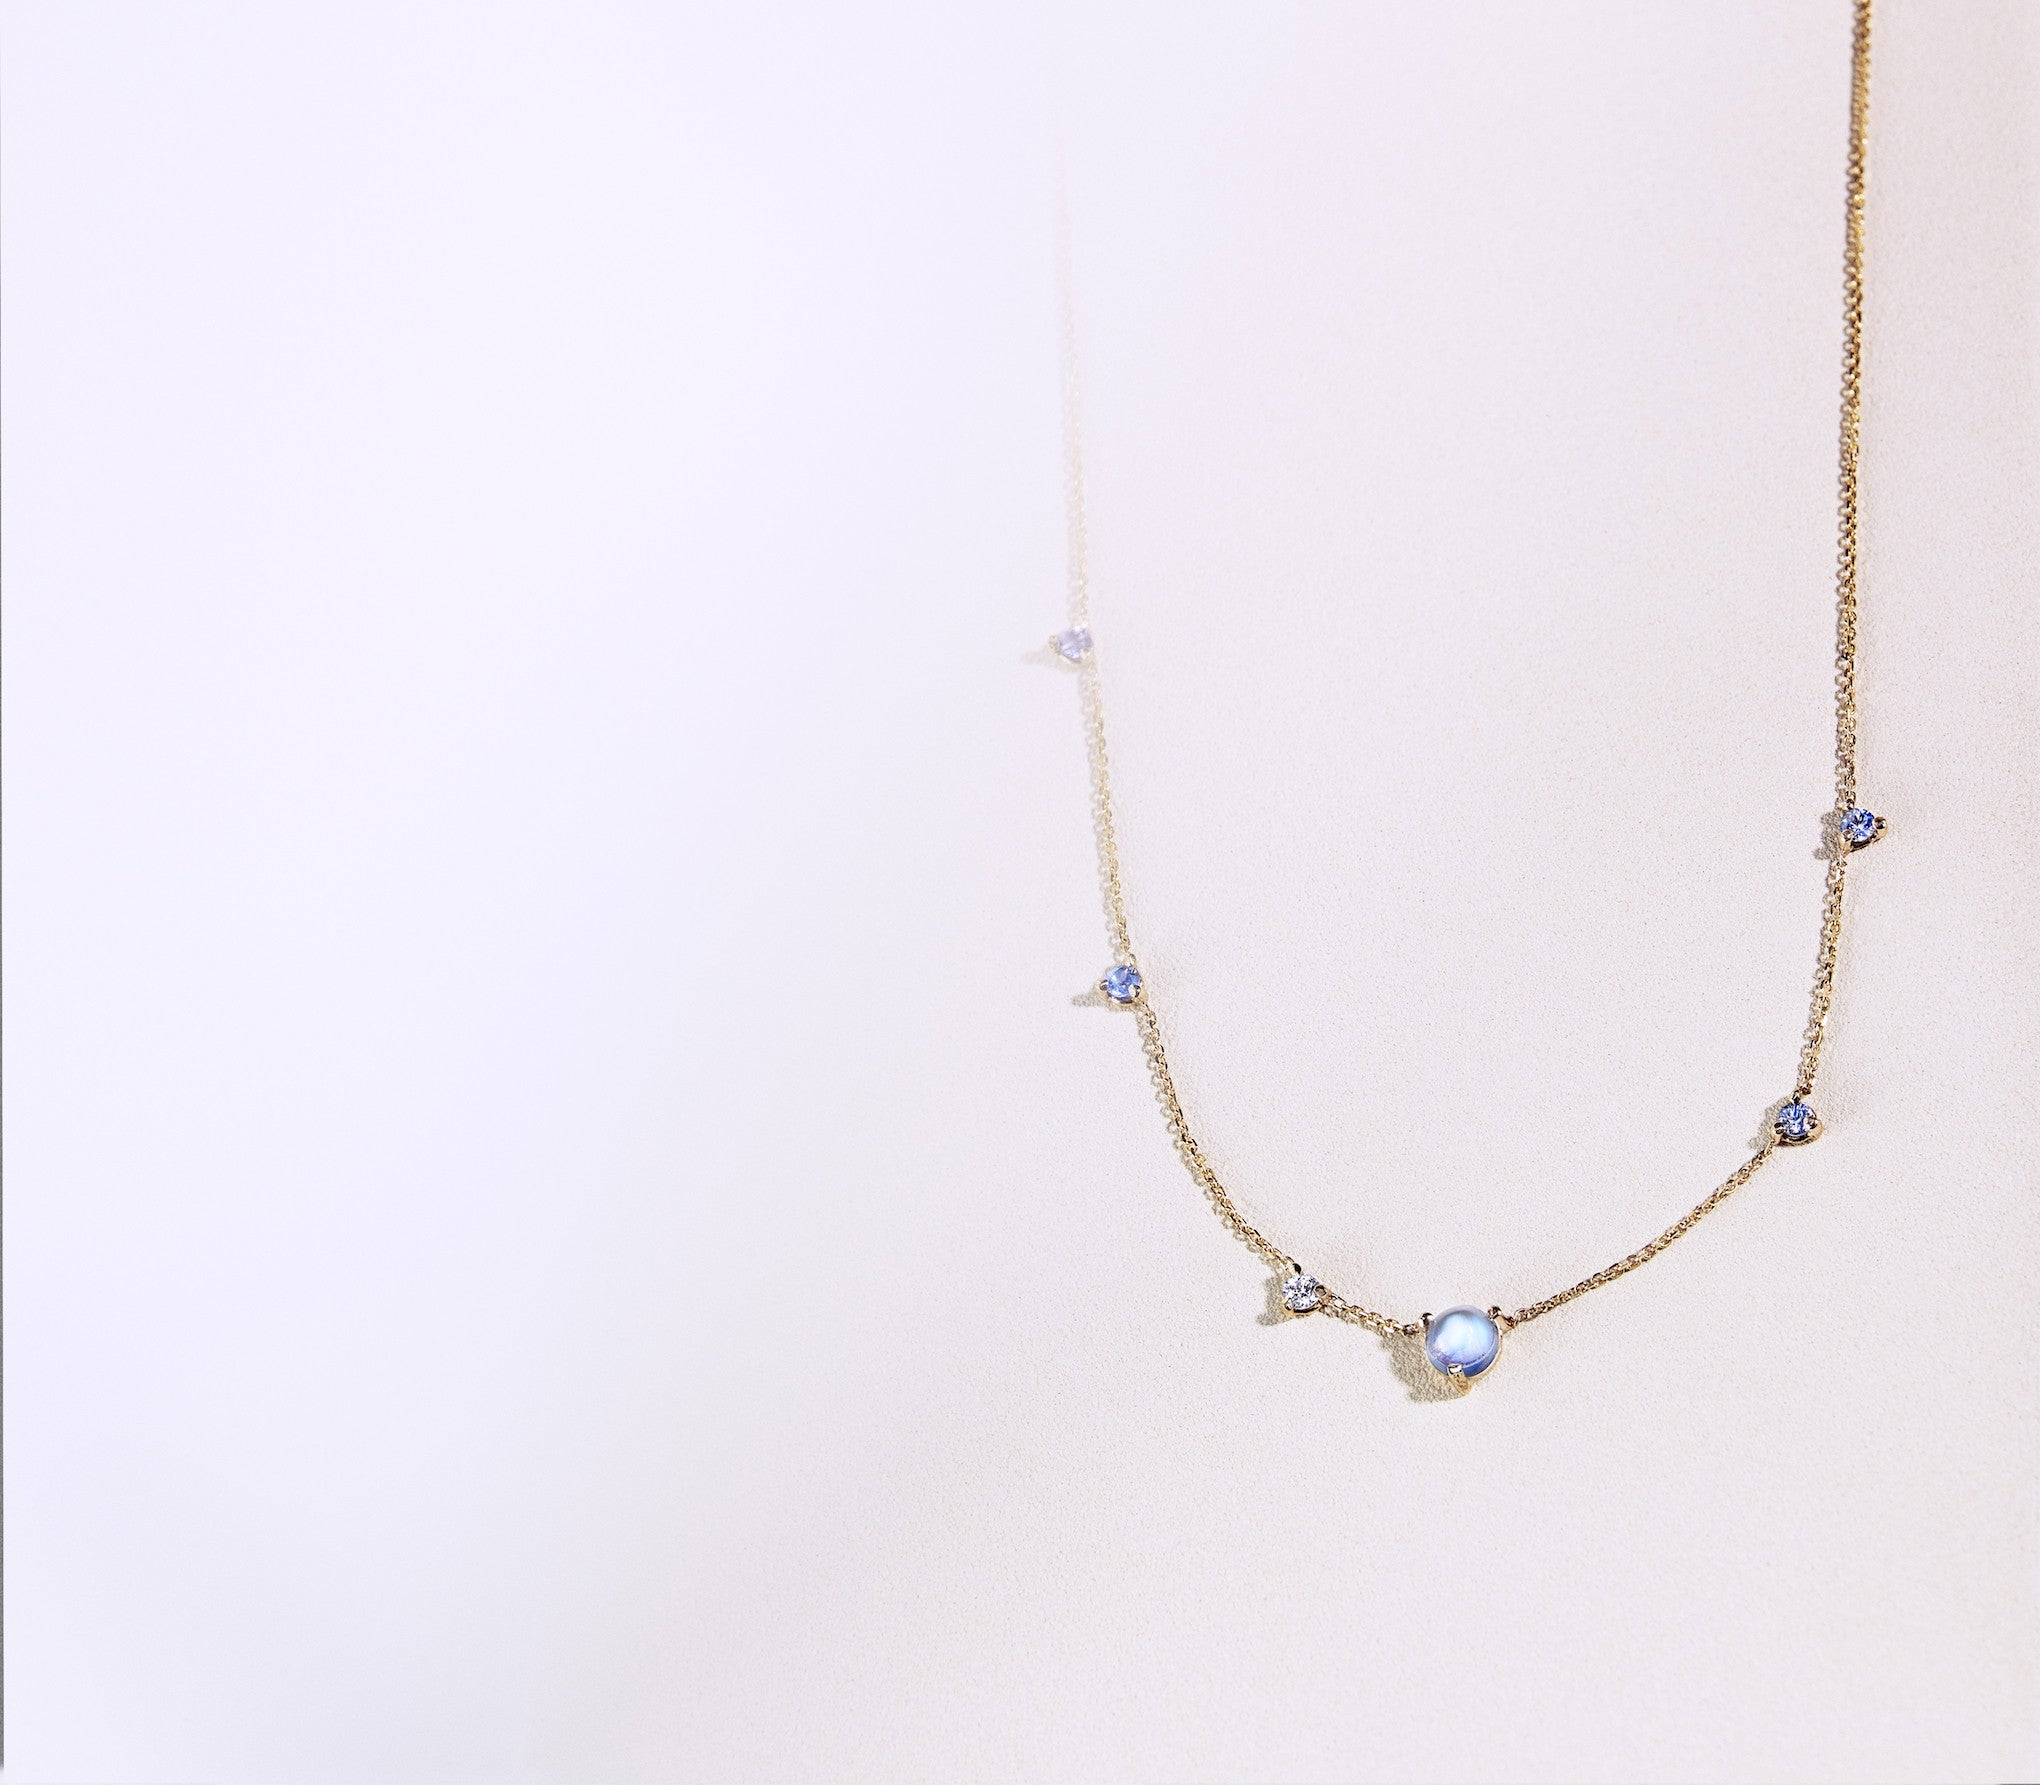 Tonal Linear Chain Necklace